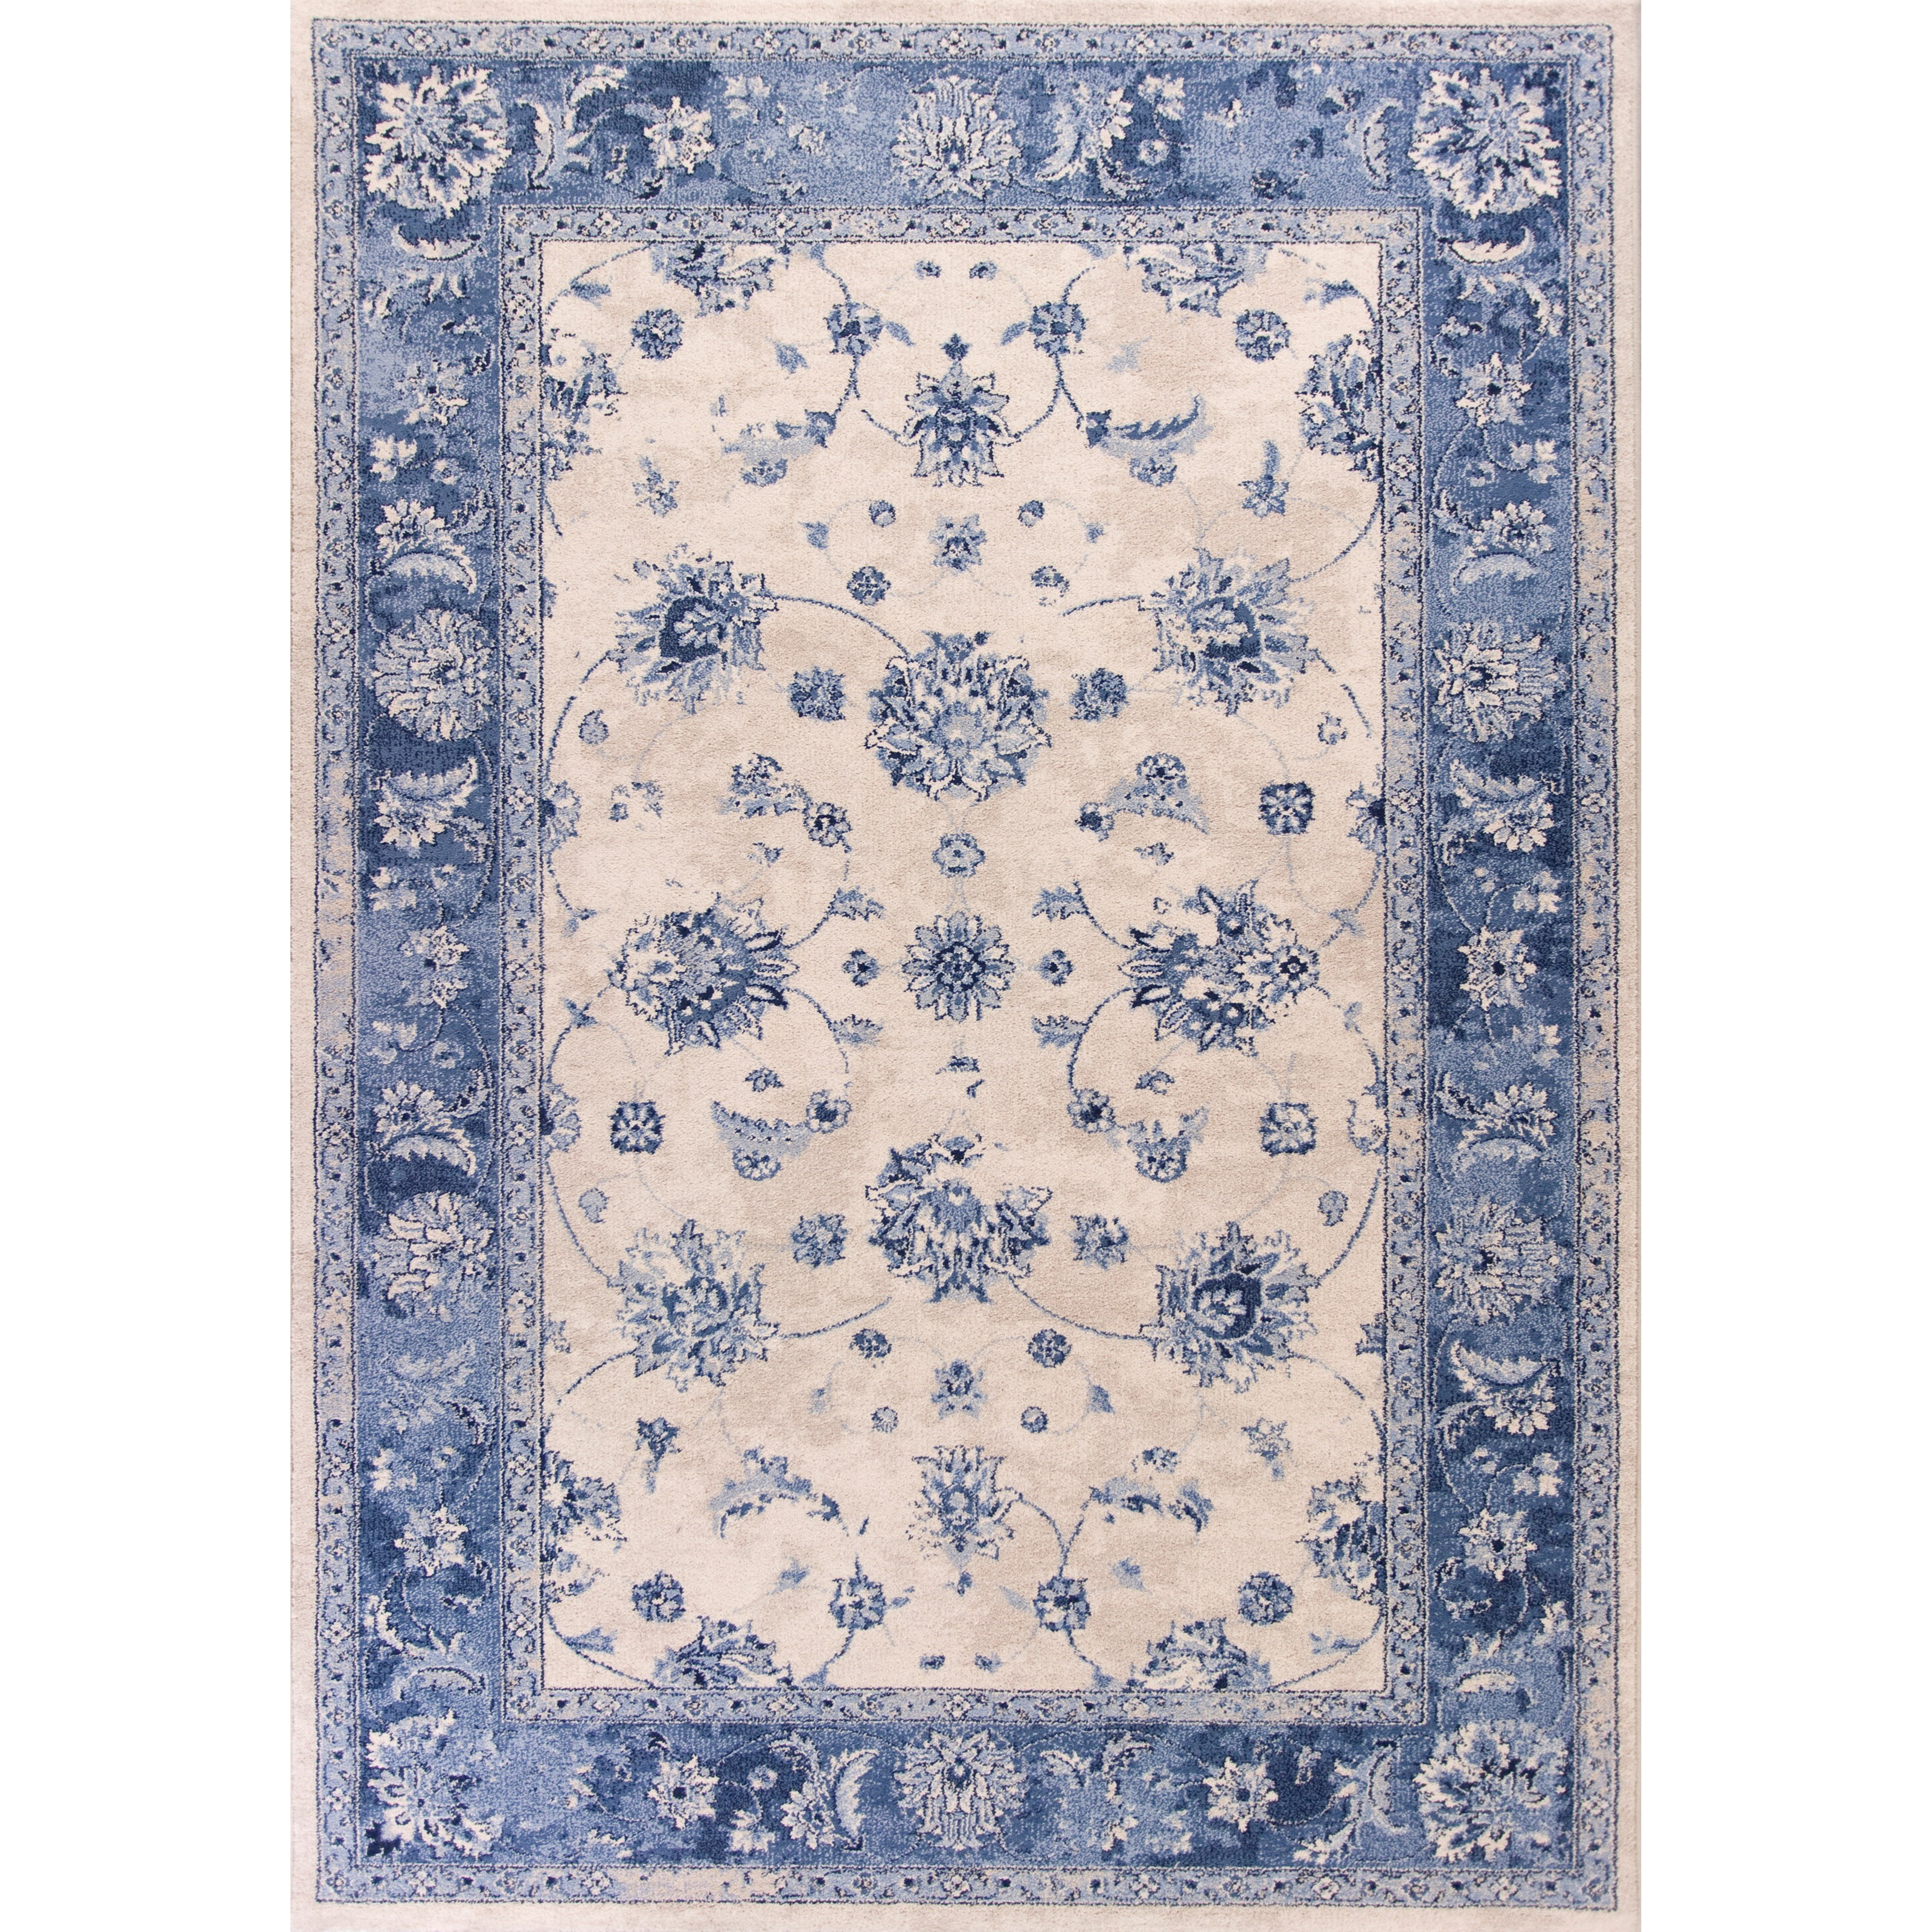 "3'3"" X 4'11"" Grey/Sky Blue Mahal Area Rug"